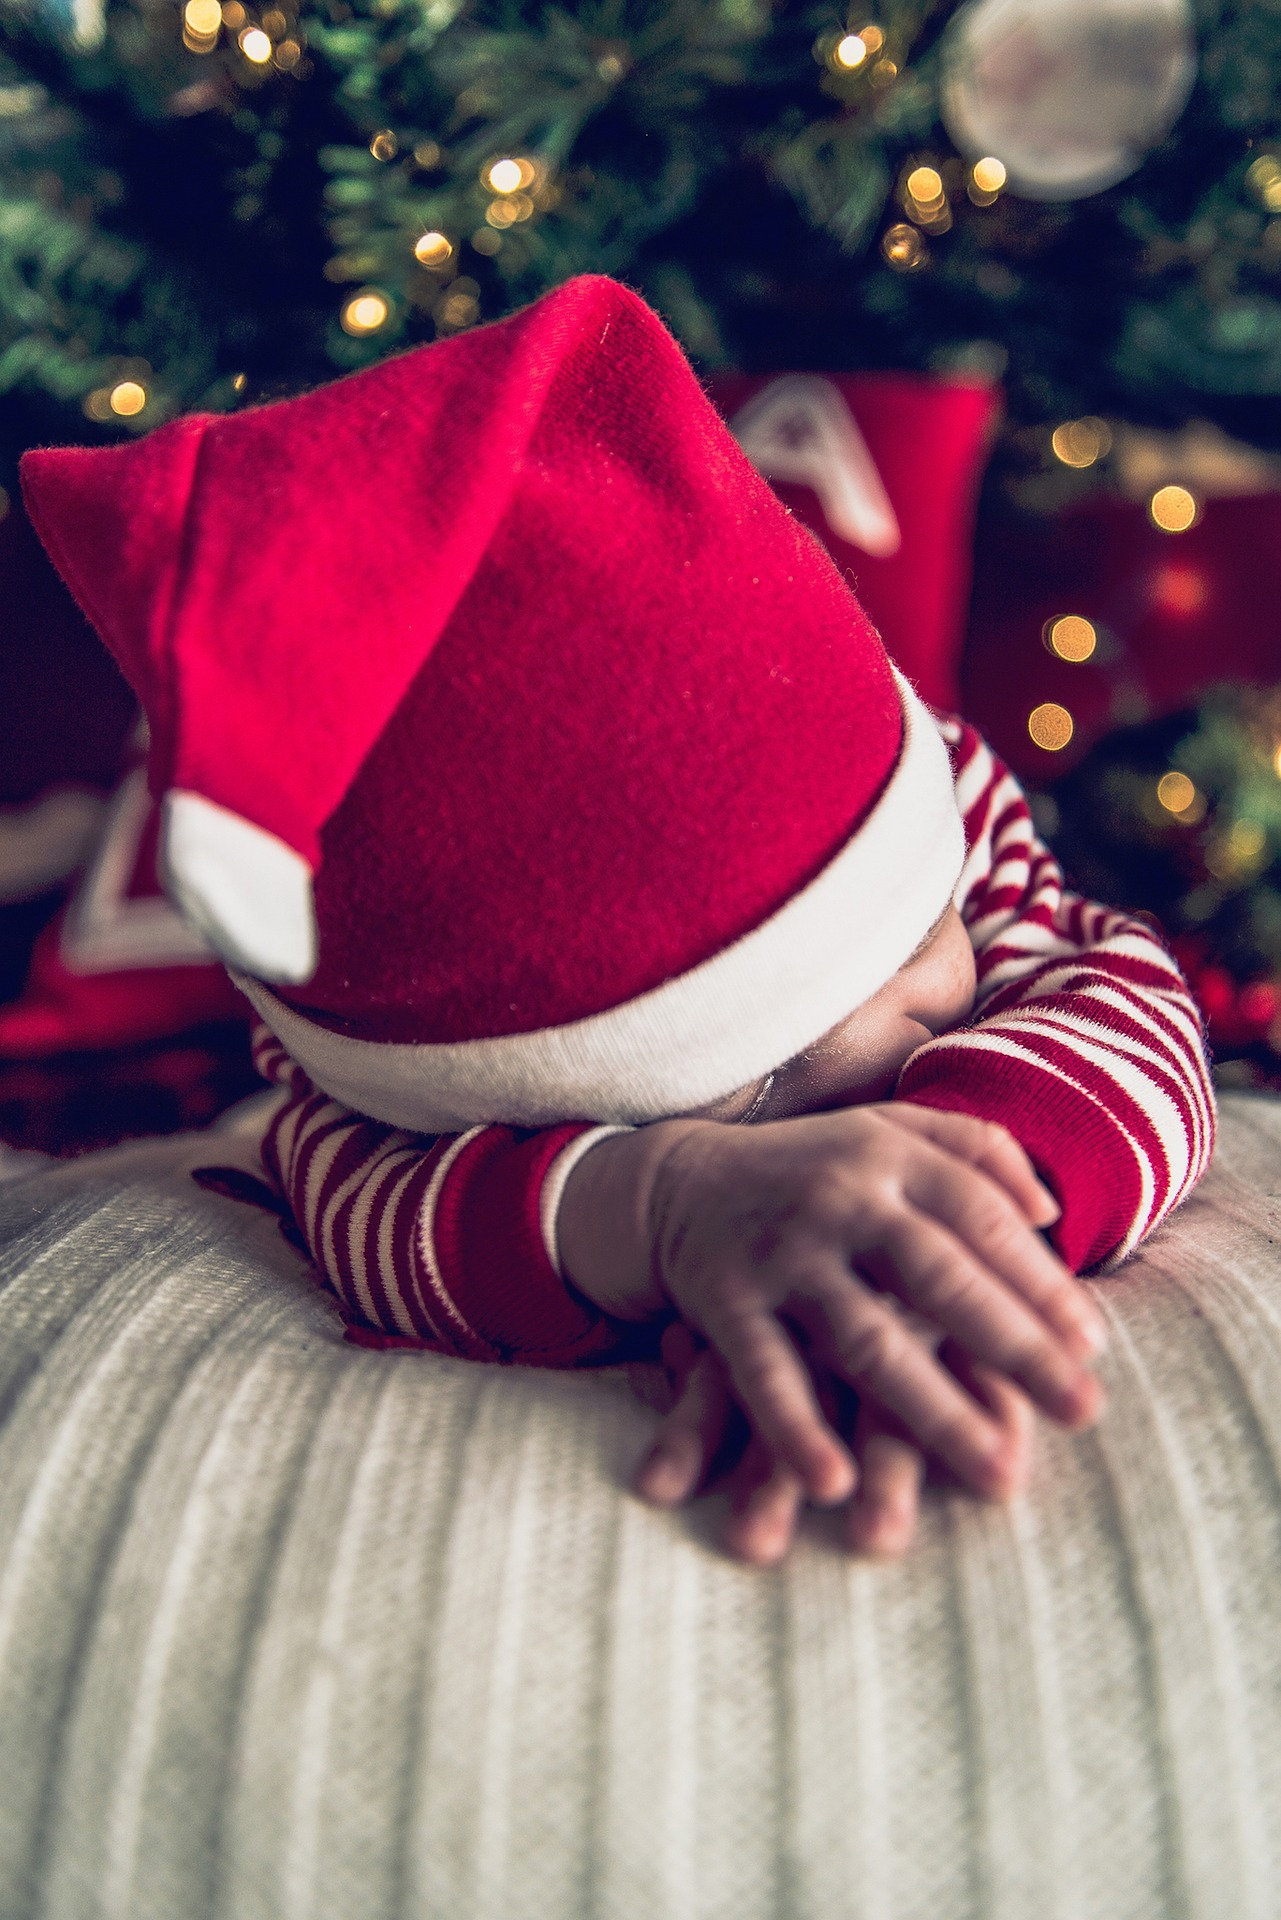 a2d918f35e4c1 However, breastfeeding during the holidays proves to be tricky for so many  mothers. Here are a few tips to make your holiday breastfeeding experience  stress ...